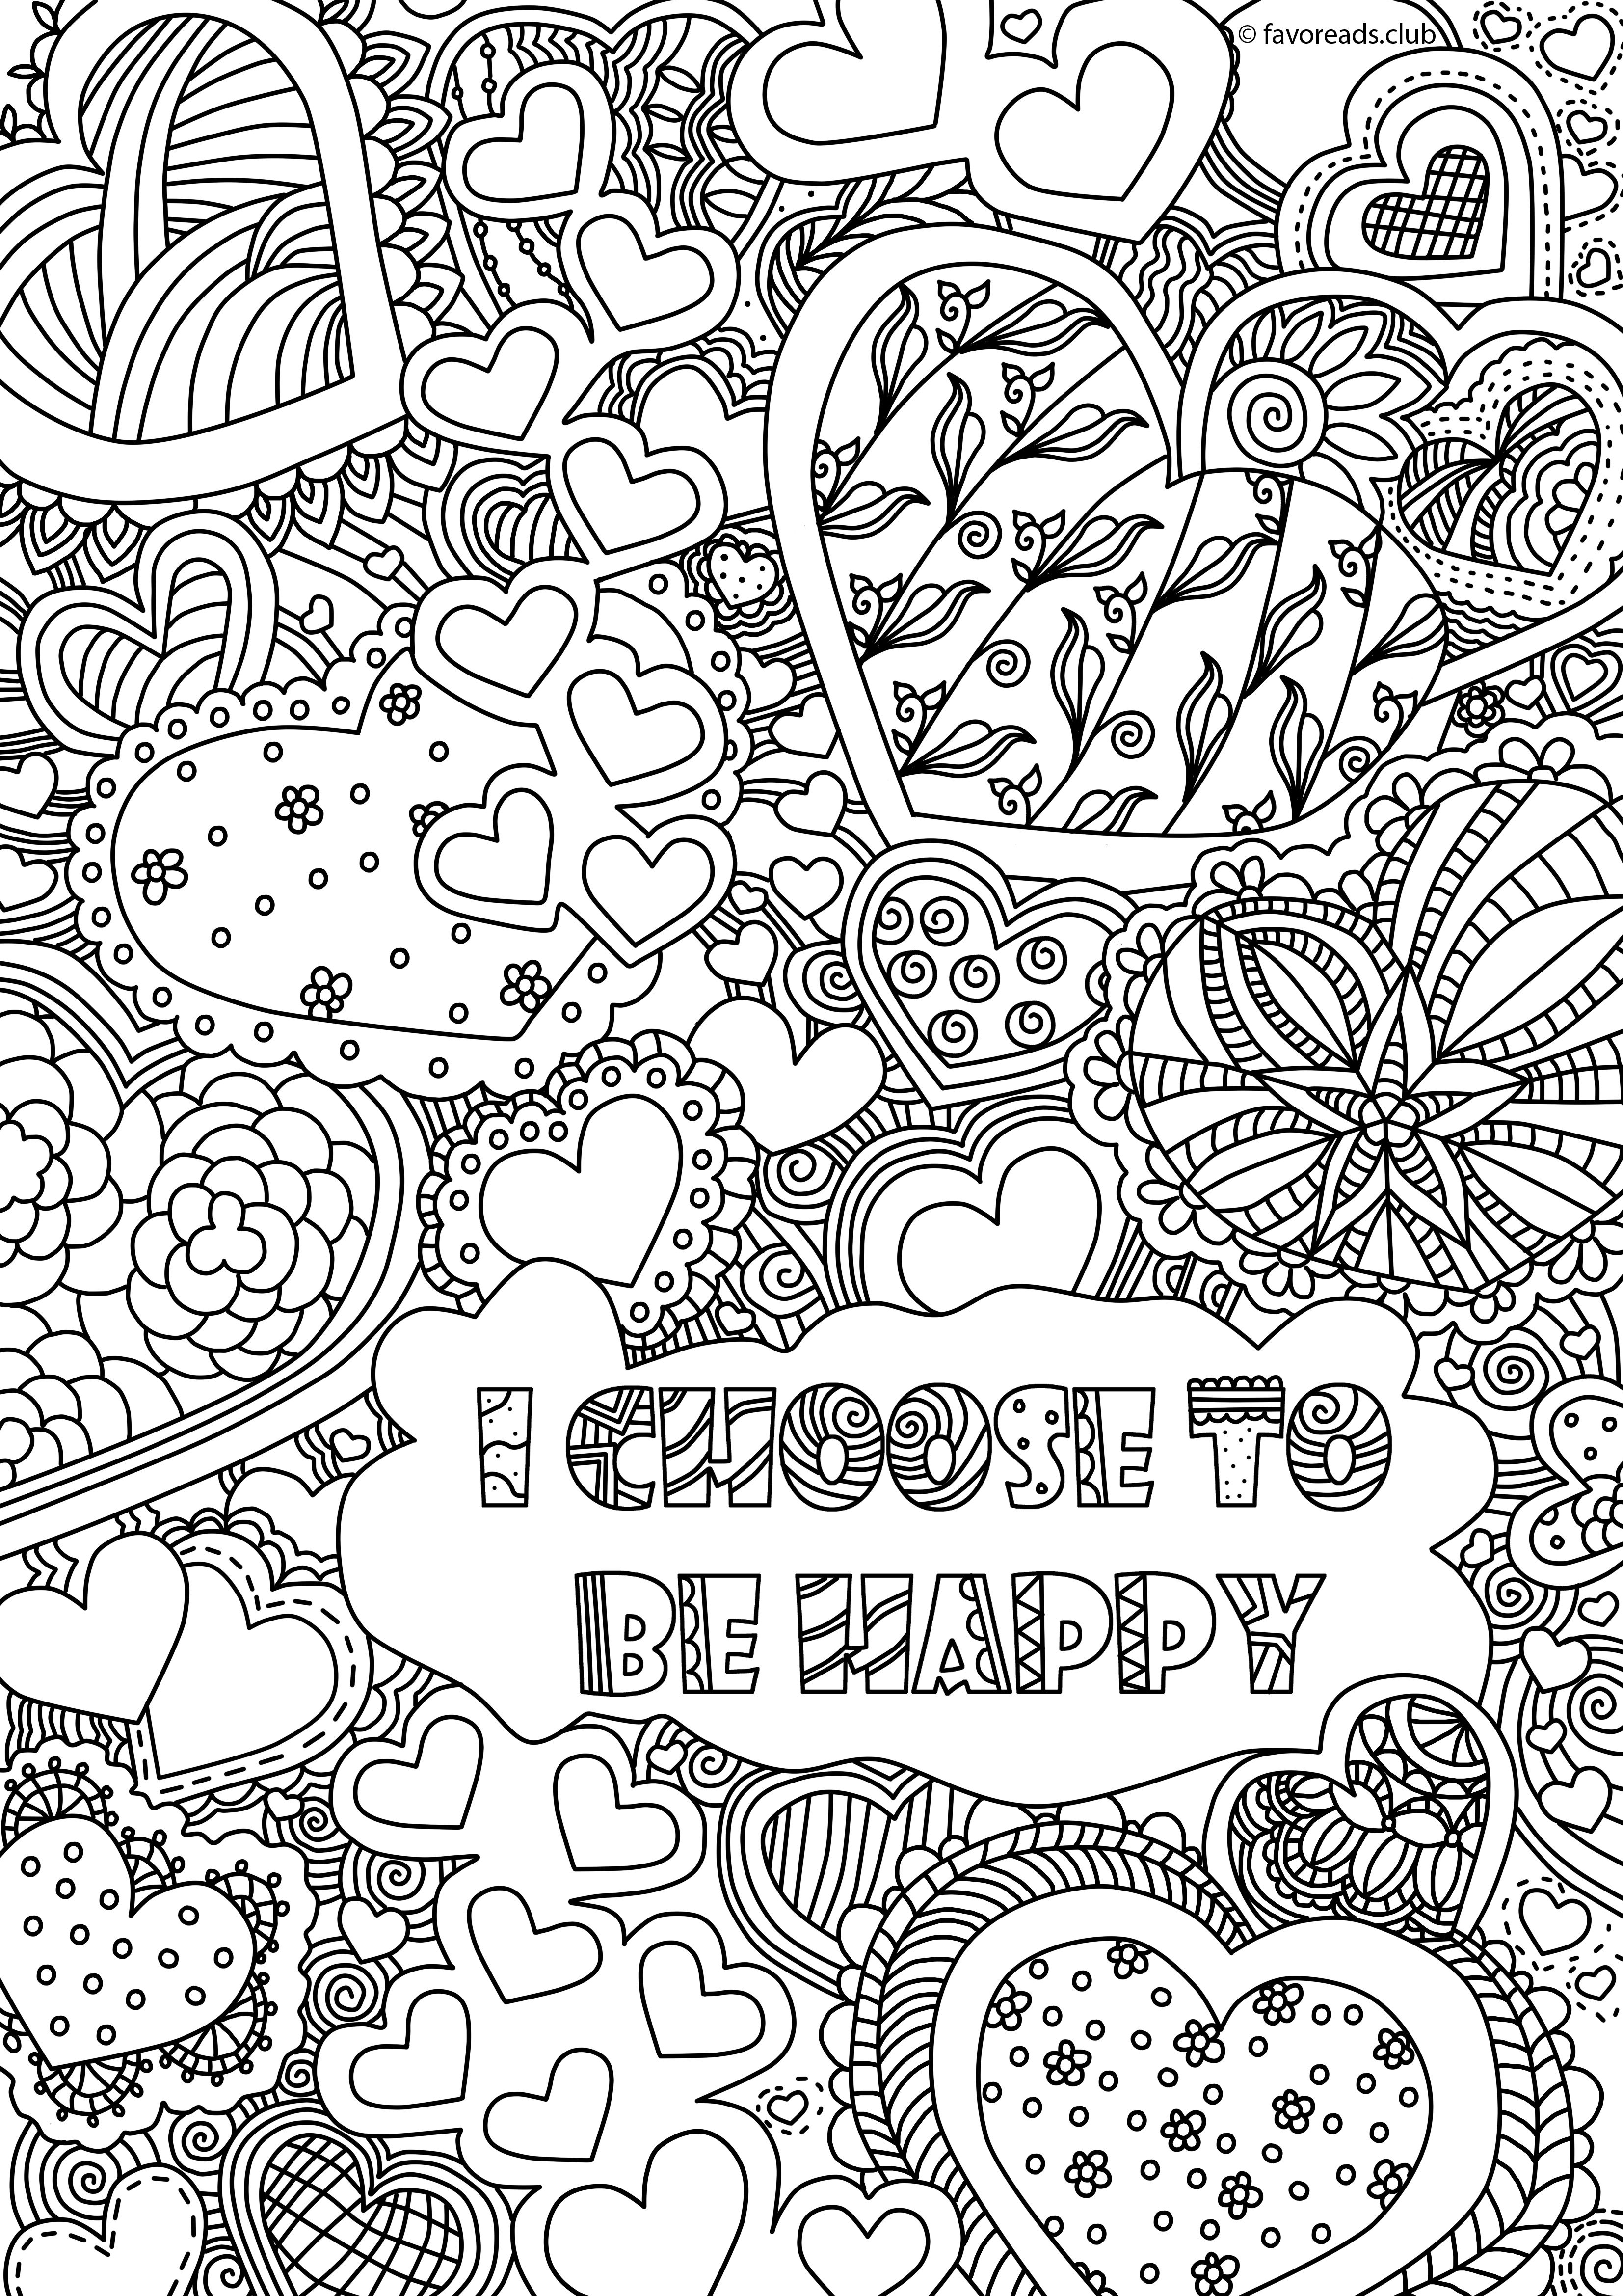 Pin by Dallas Goodwin on ADULT COLORING PAGES | Printable ... | free printable inspirational coloring pages for adults